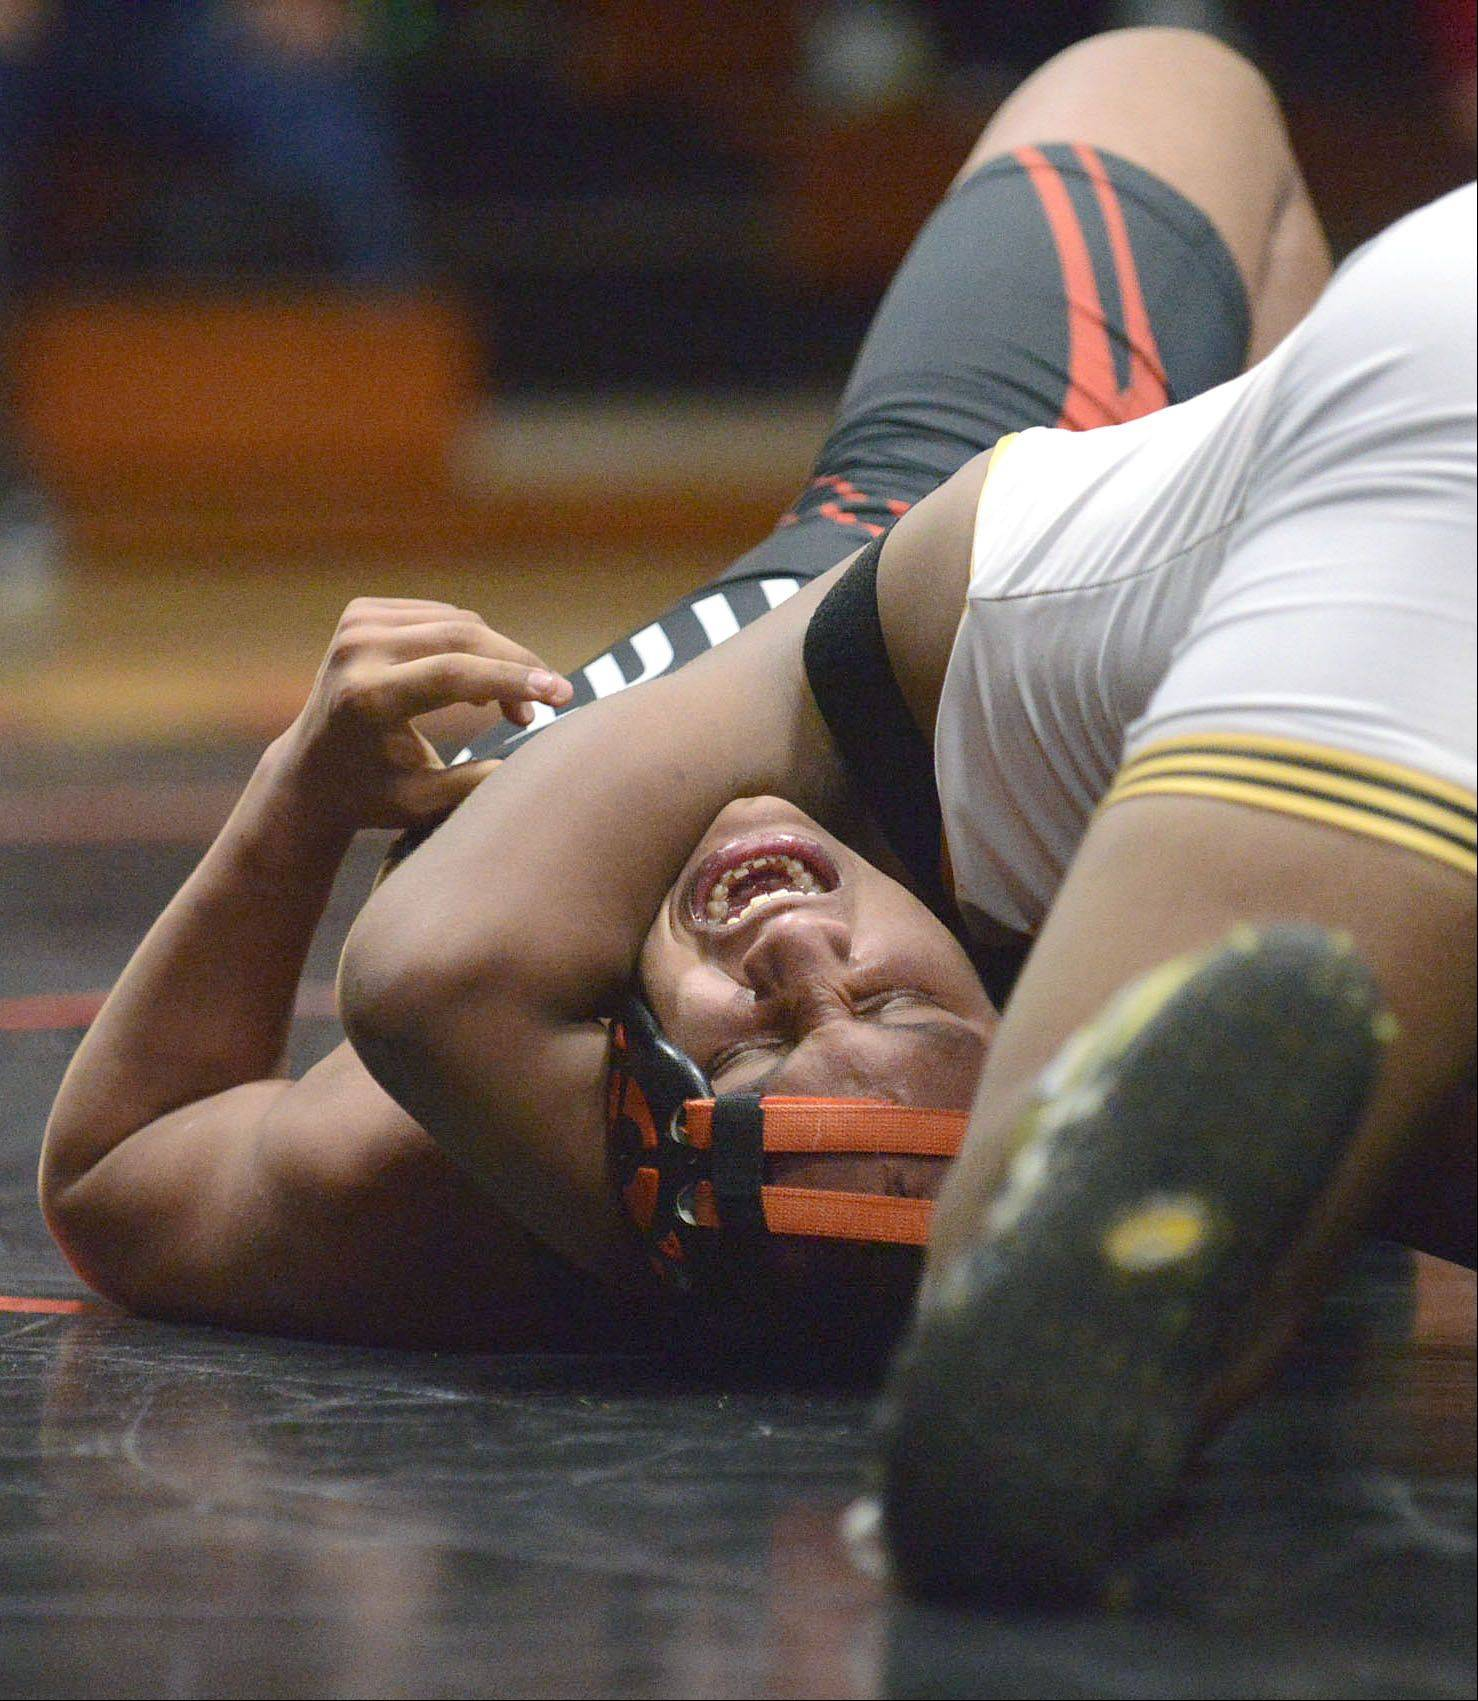 St. Charles East's Ray David Cuautle is trapped in a headlock by Metea Valley's Dylan Ervin in the 195 pound match on Thursday, December 19. Ervin took the win.